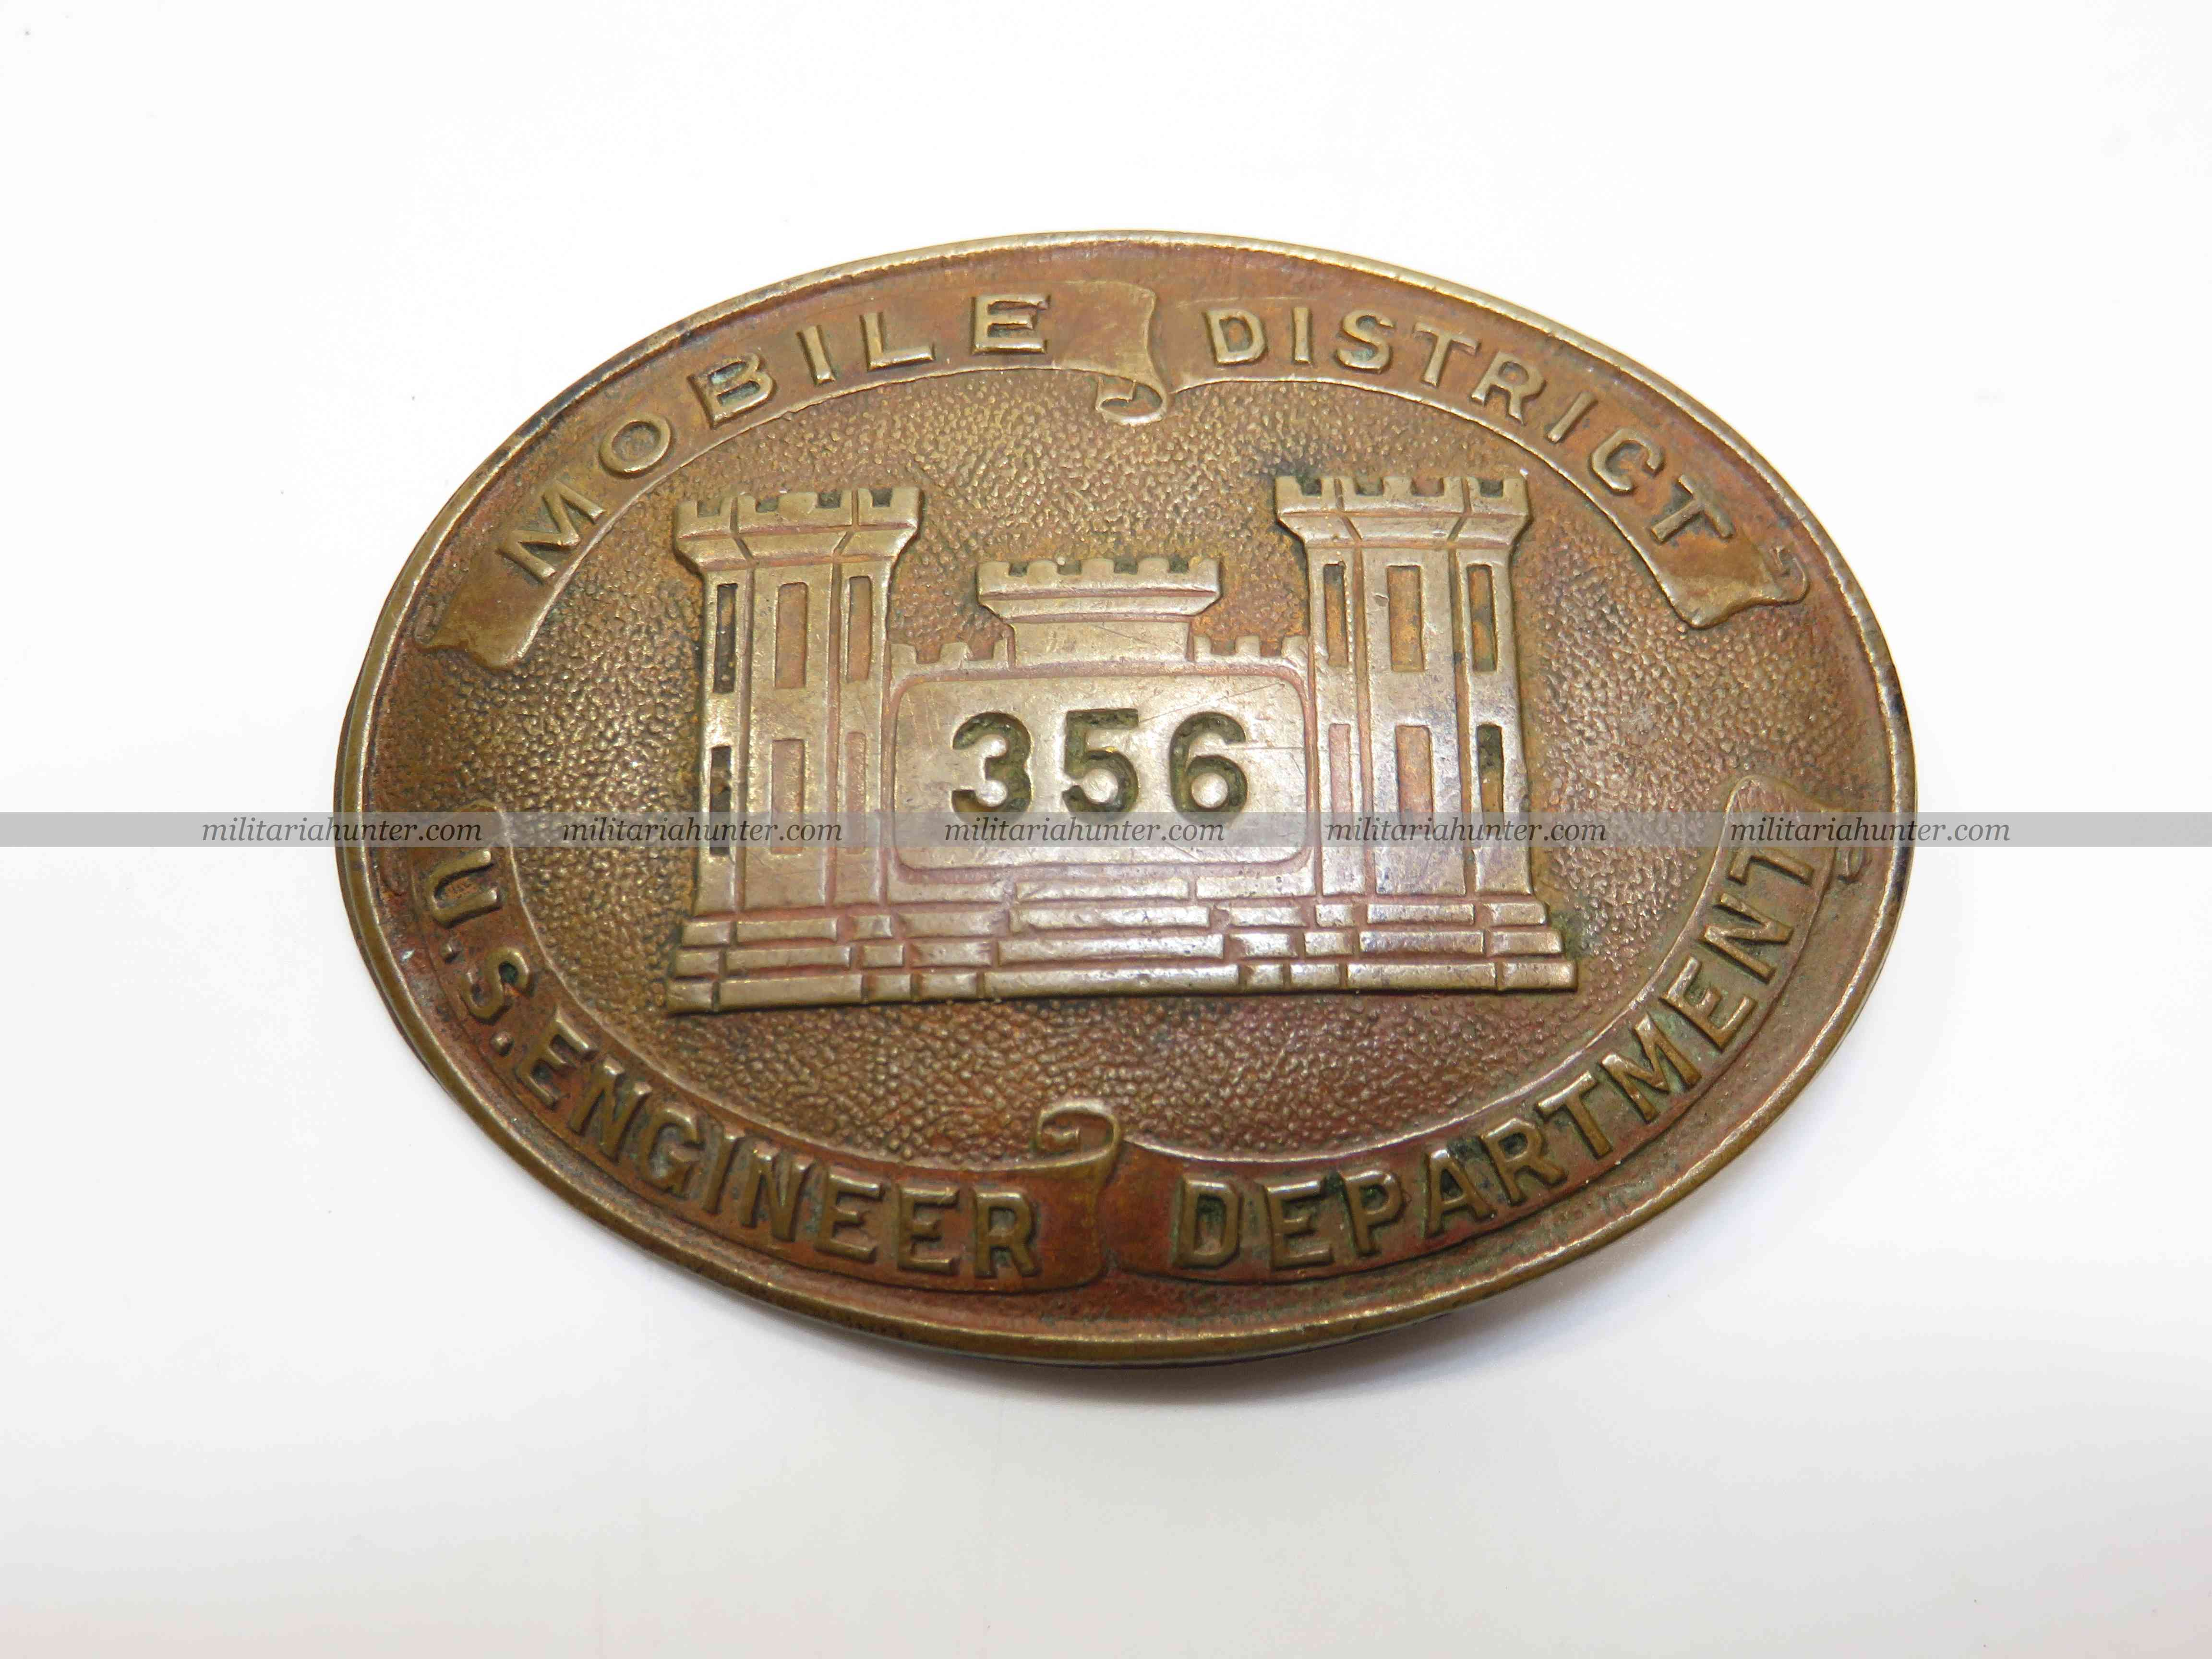 militaria : US ww1 US army engineers mobile district badge